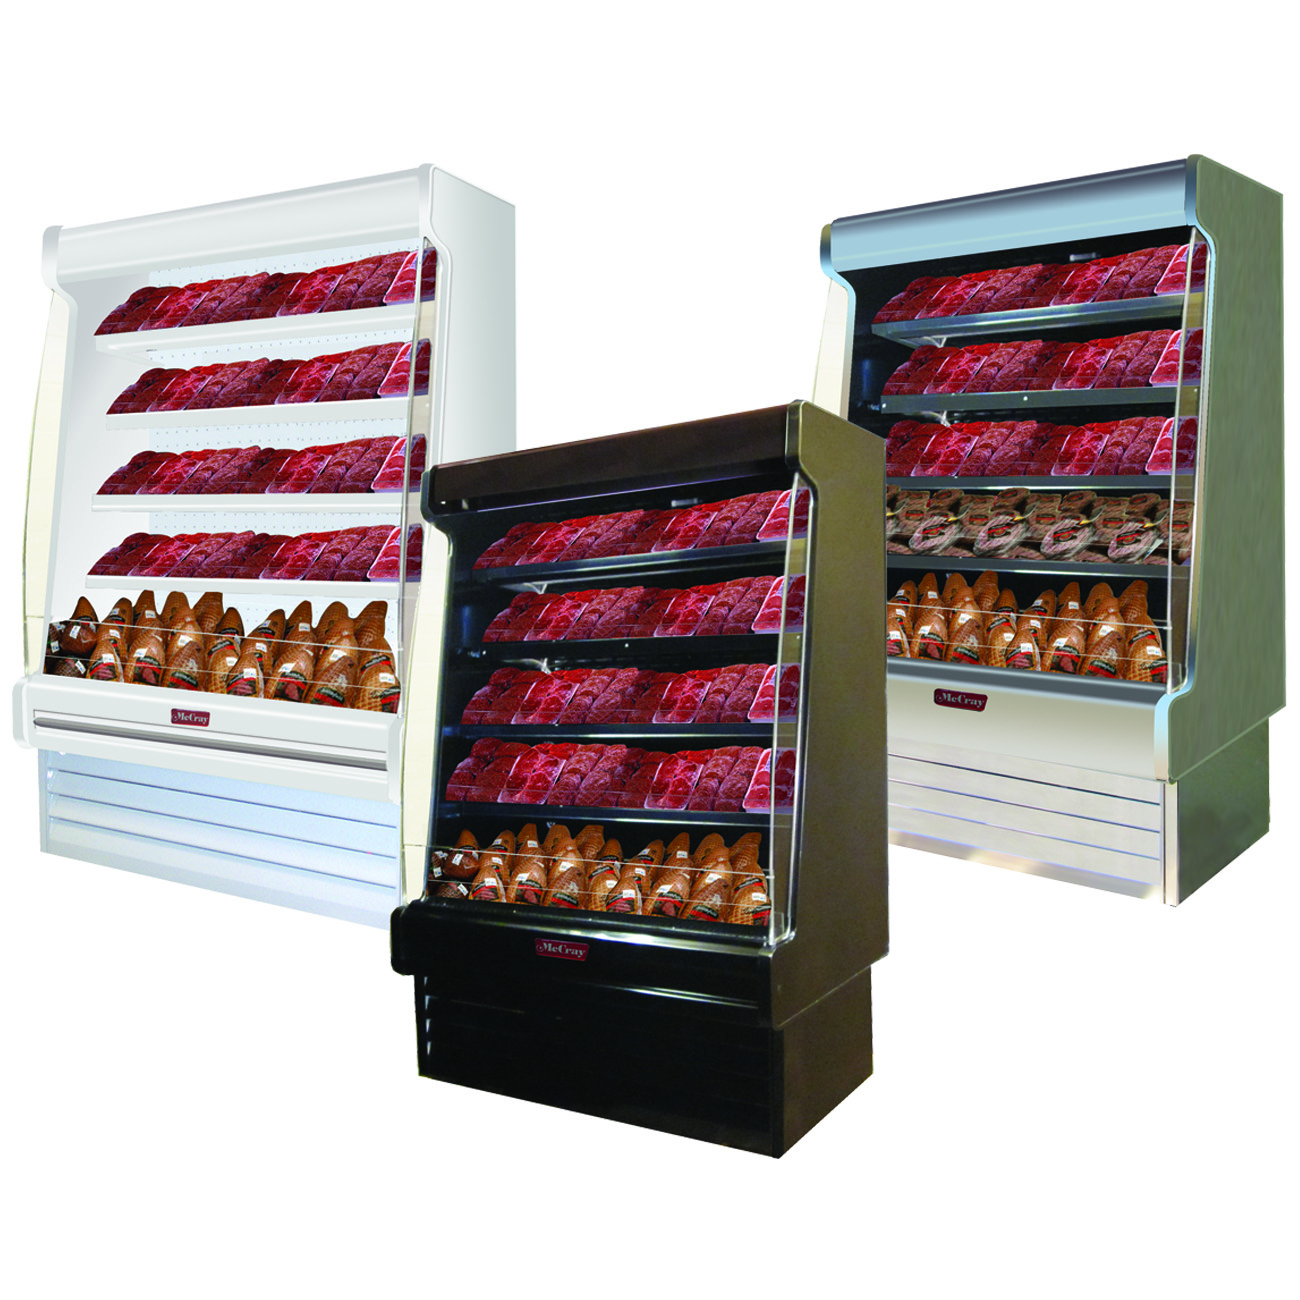 Howard-McCray SC-OM35E-6S-B-LED merchandiser, open refrigerated display